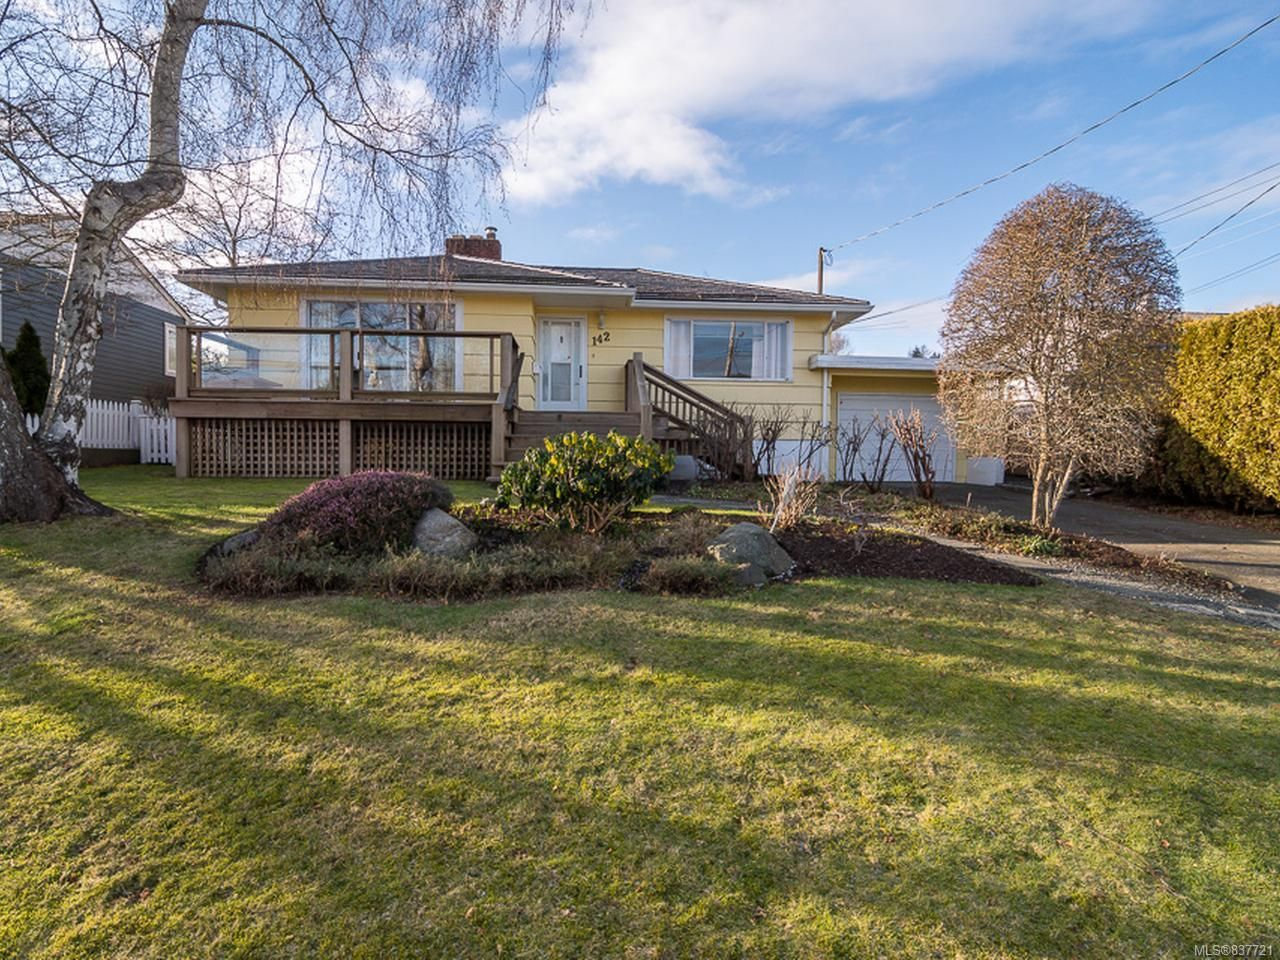 Main Photo: 142 THULIN STREET in CAMPBELL RIVER: CR Campbell River Central House for sale (Campbell River)  : MLS®# 837721